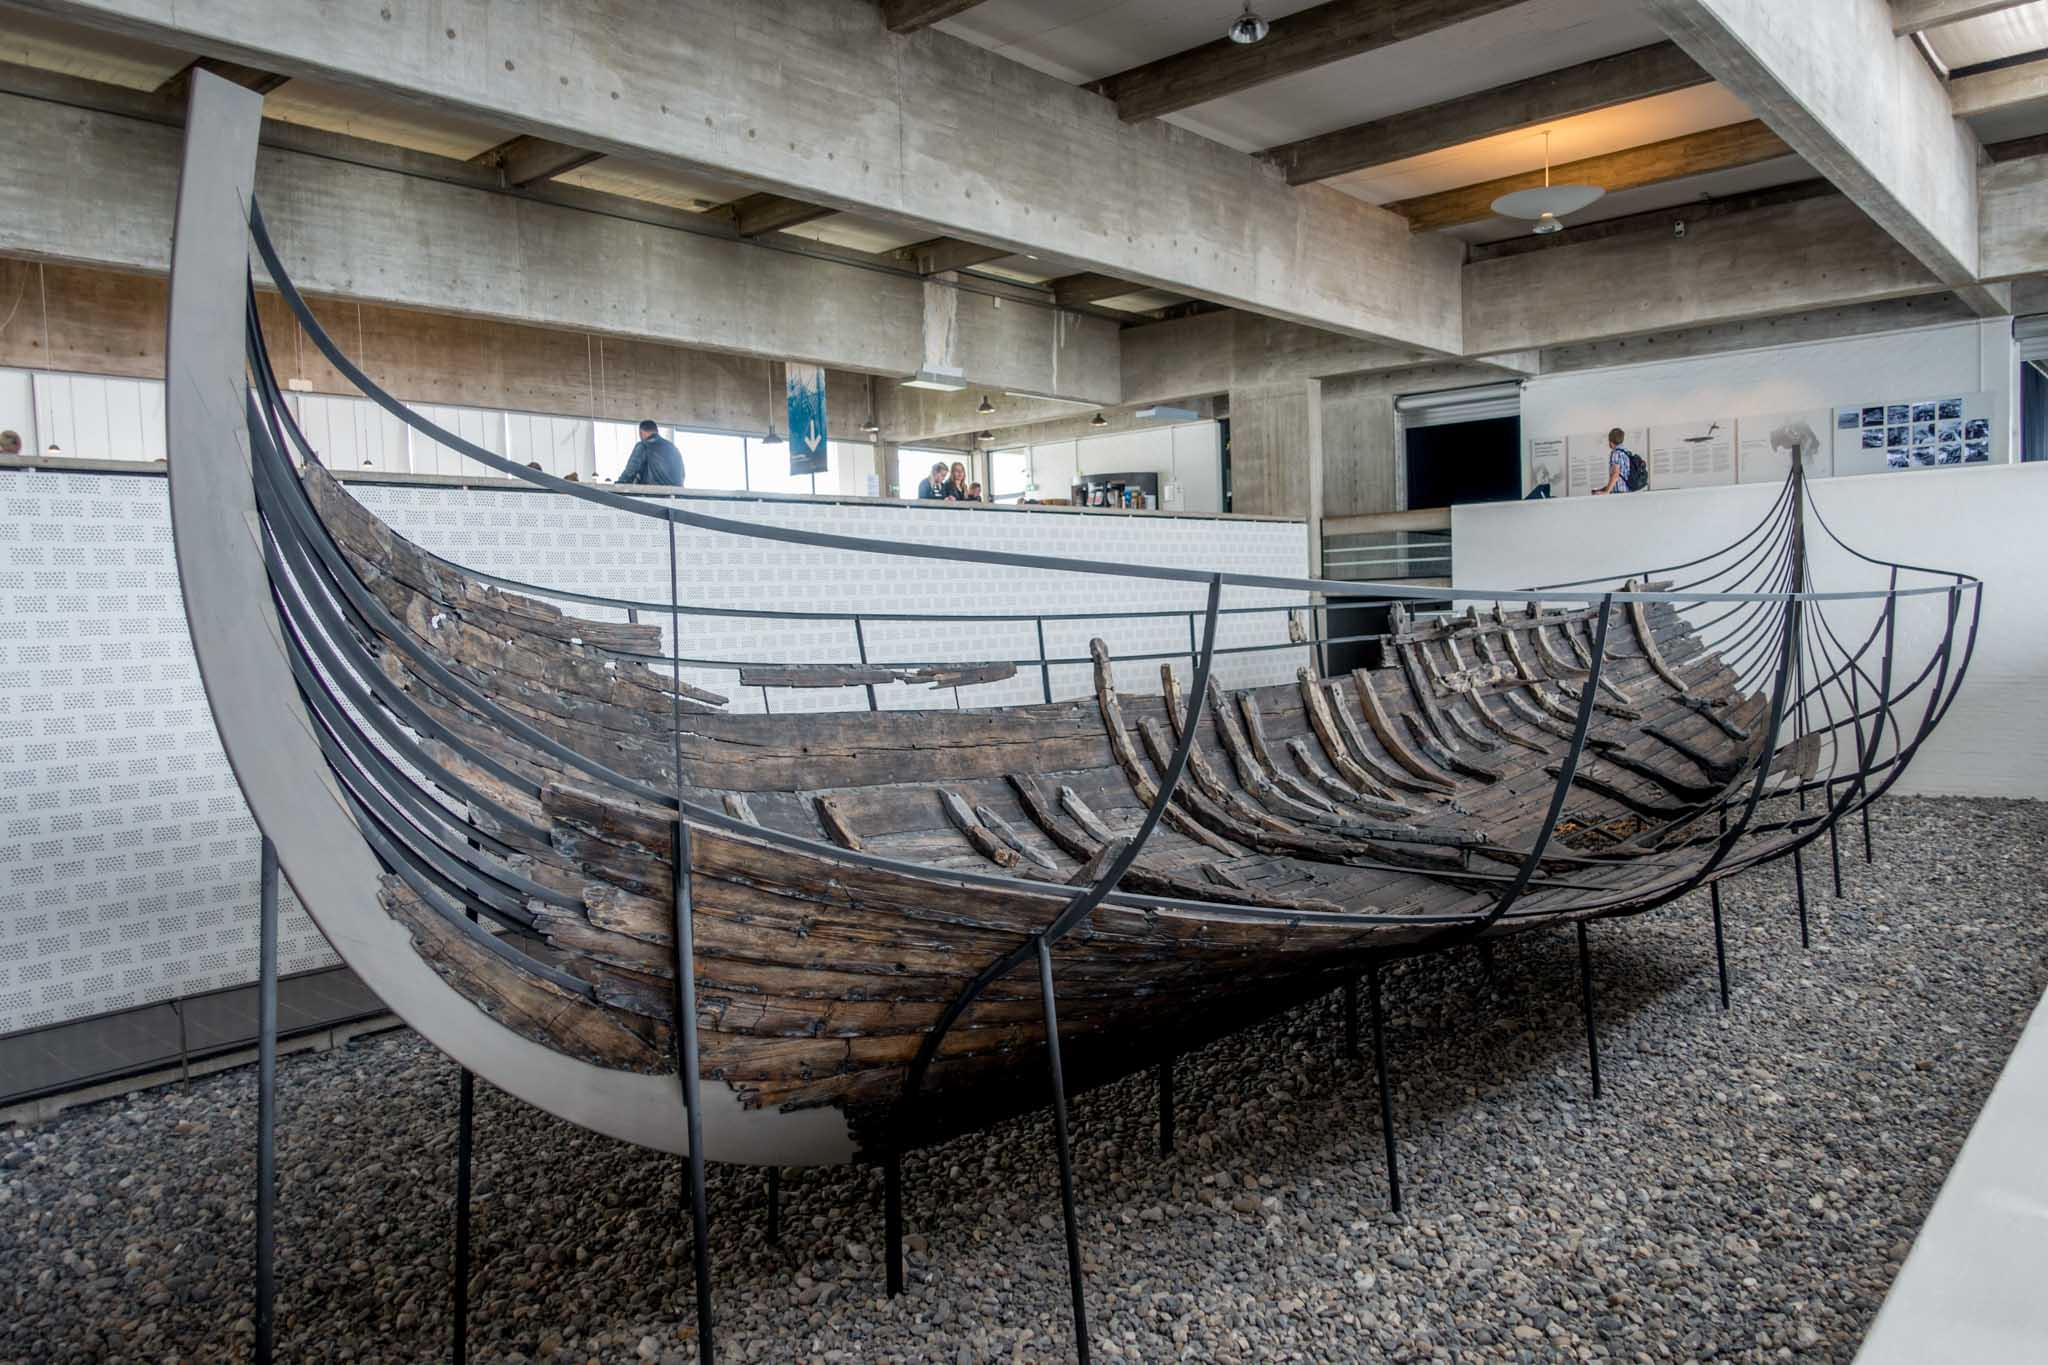 The ships on display at the Roskilde Viking Ship Museum in Denmark date from the 11th century